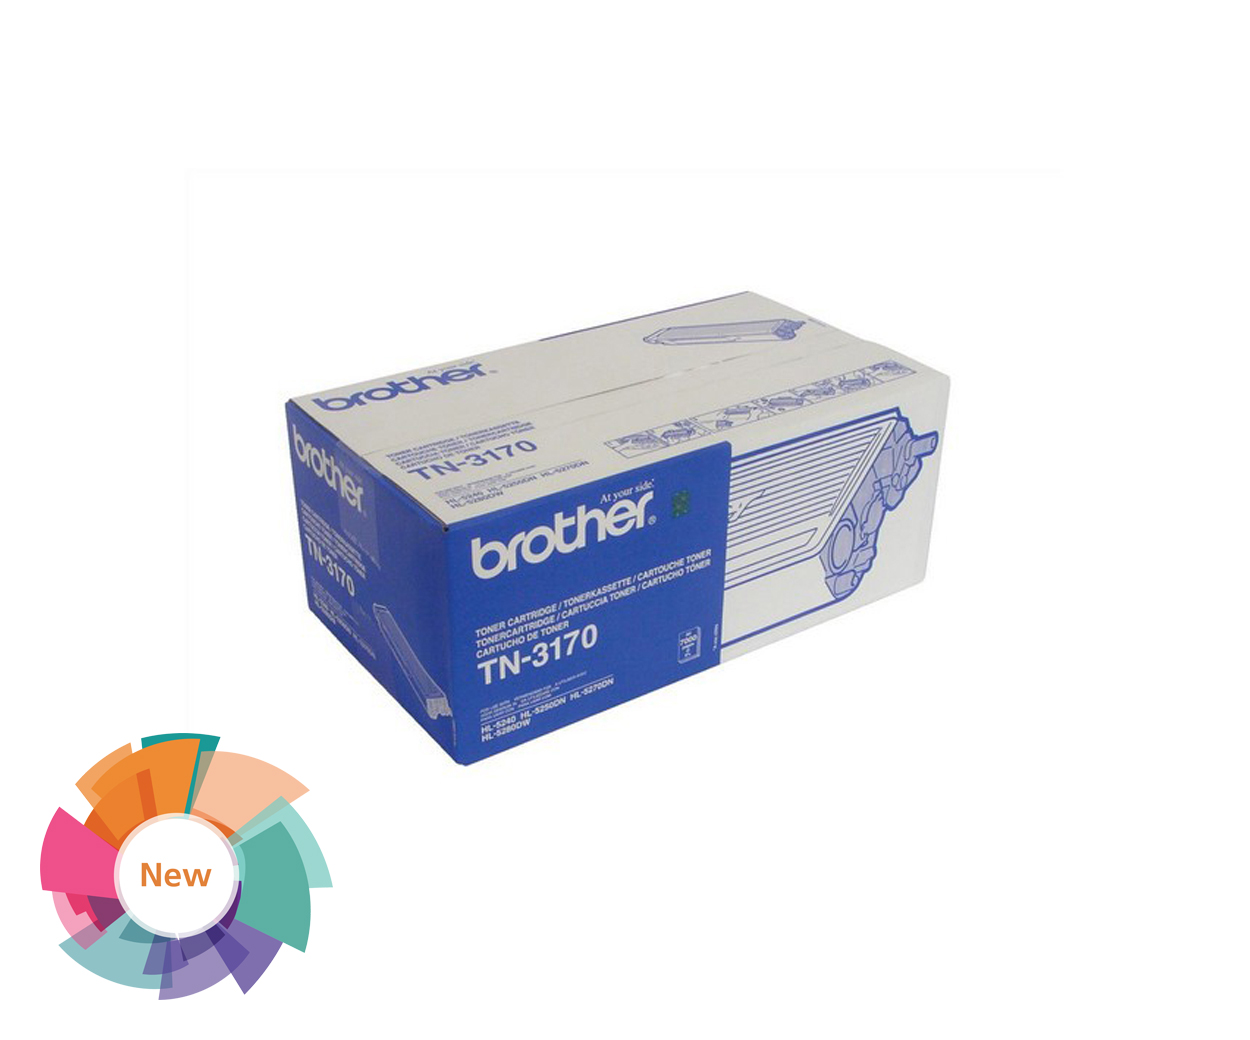 Stationery Clearance - Brother TN3170 Toner Cartridge